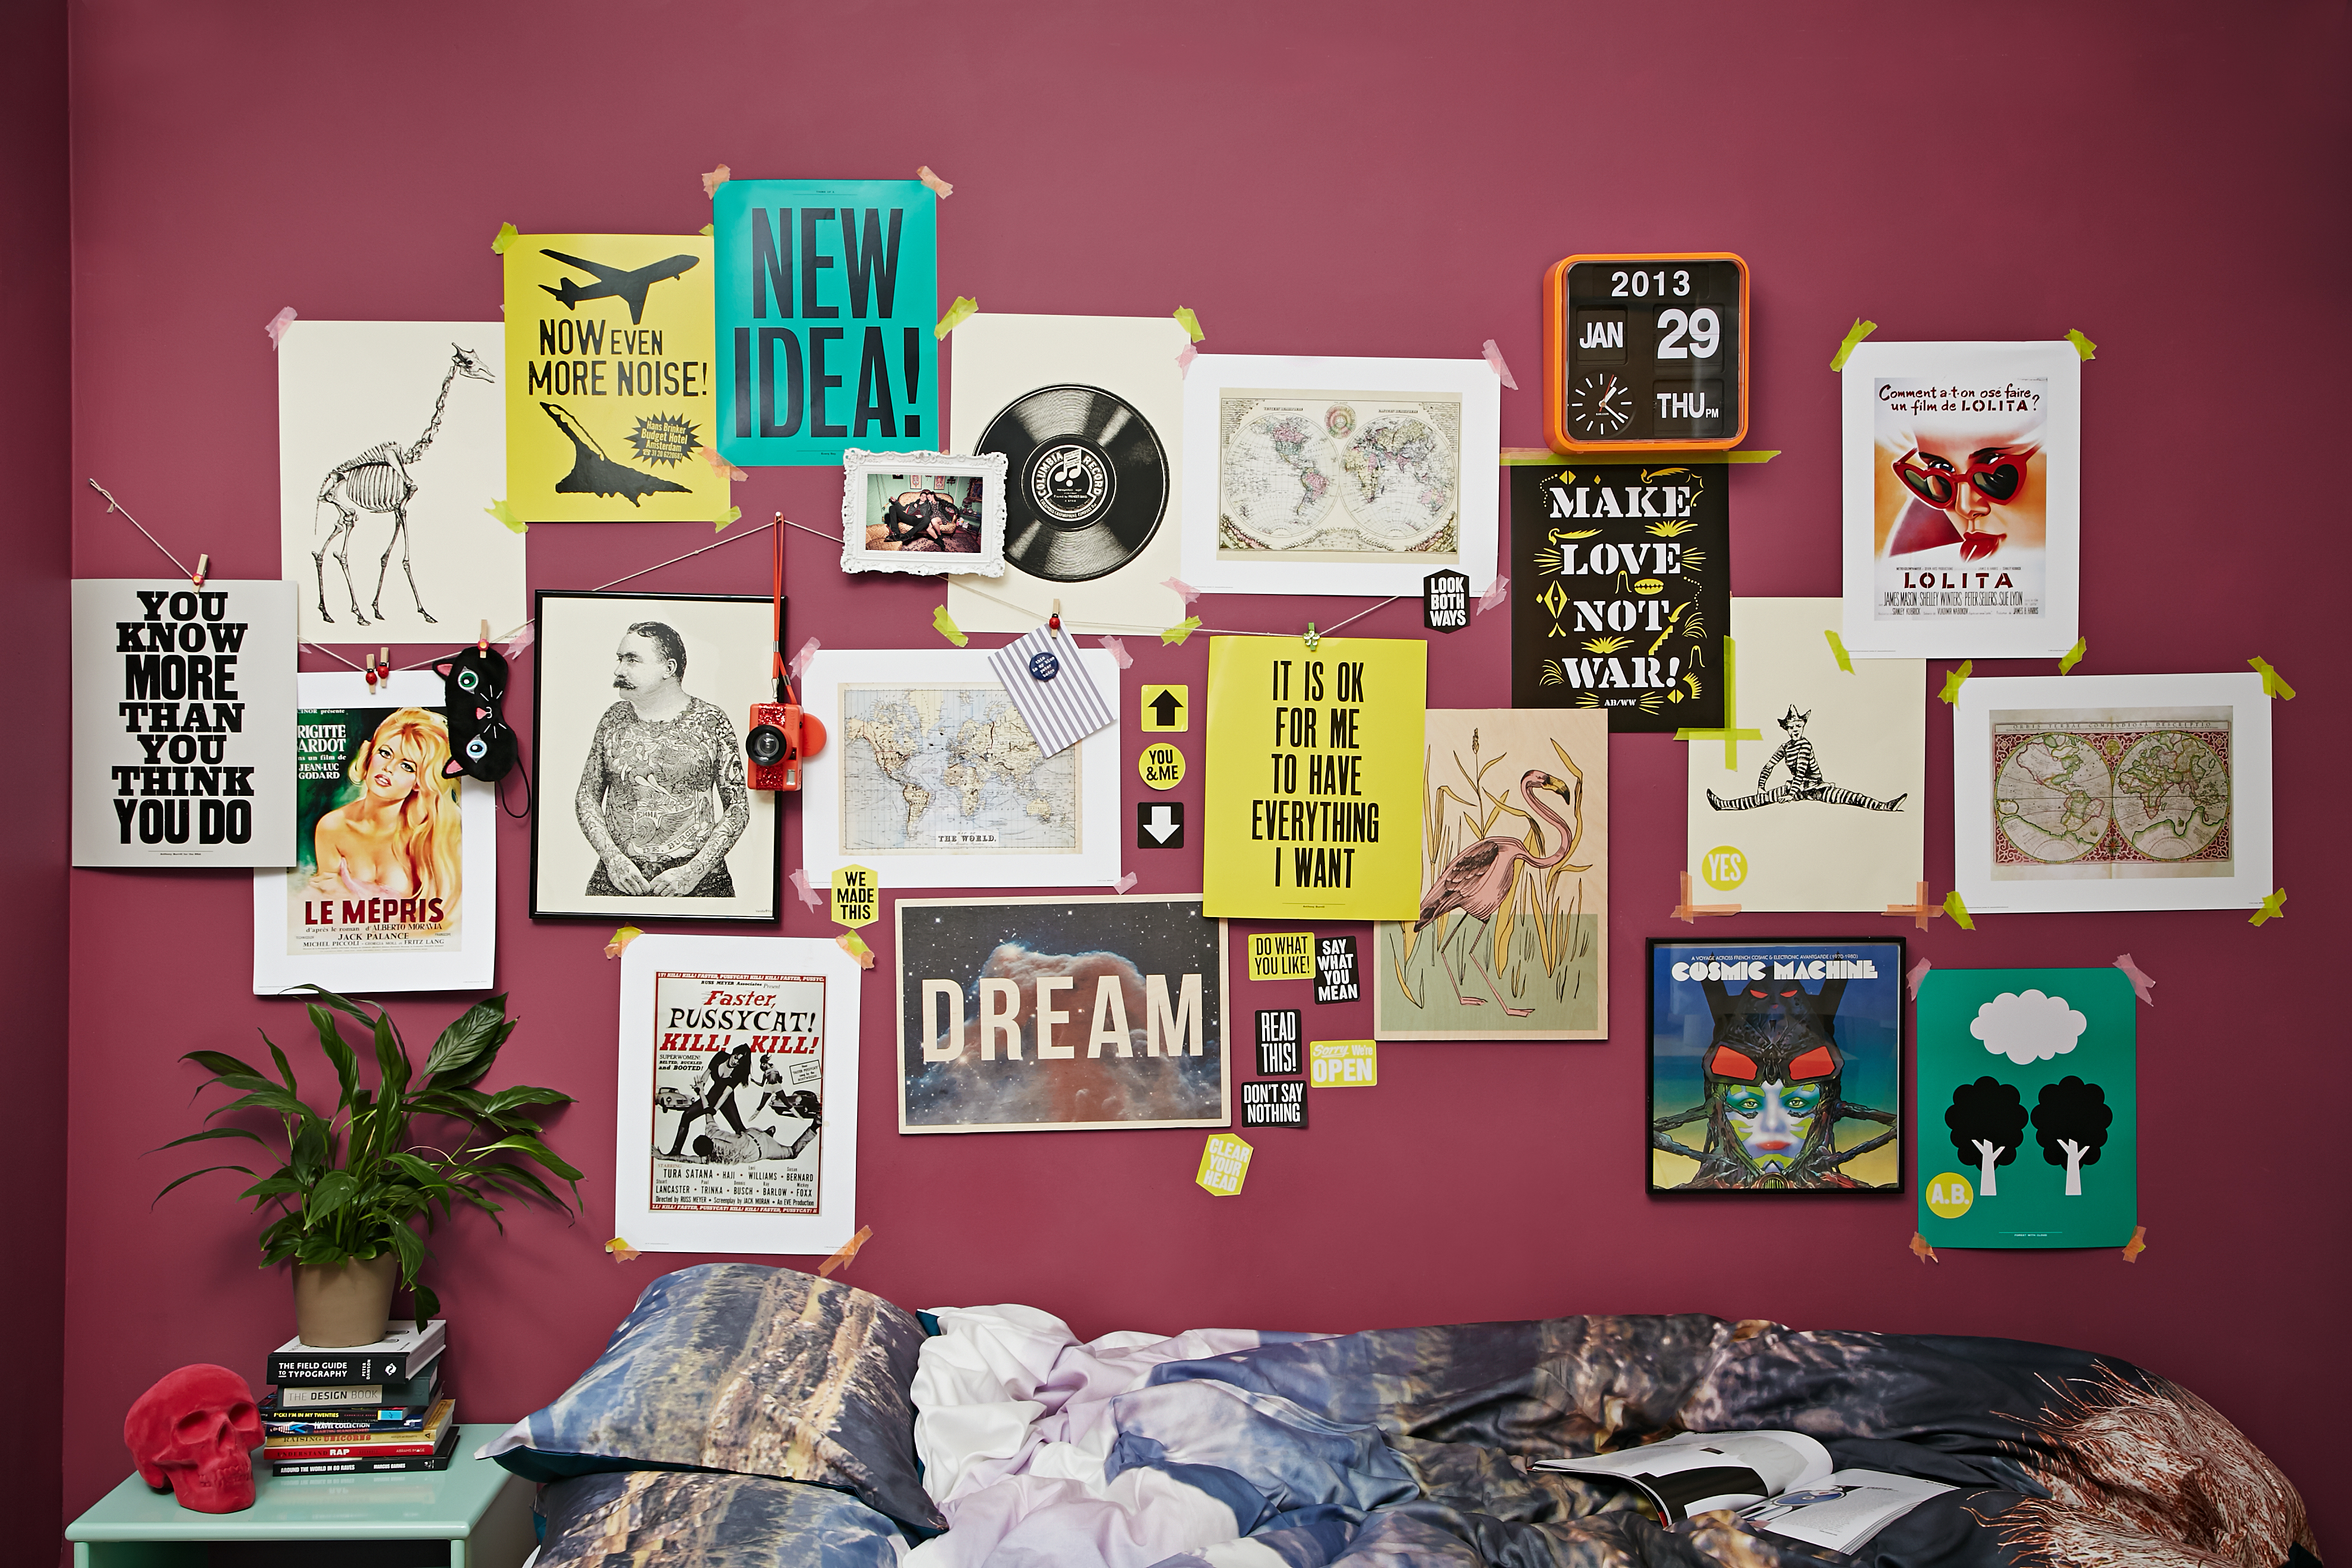 Wk 4_GW_Home_Posters 1 of 2.jpg